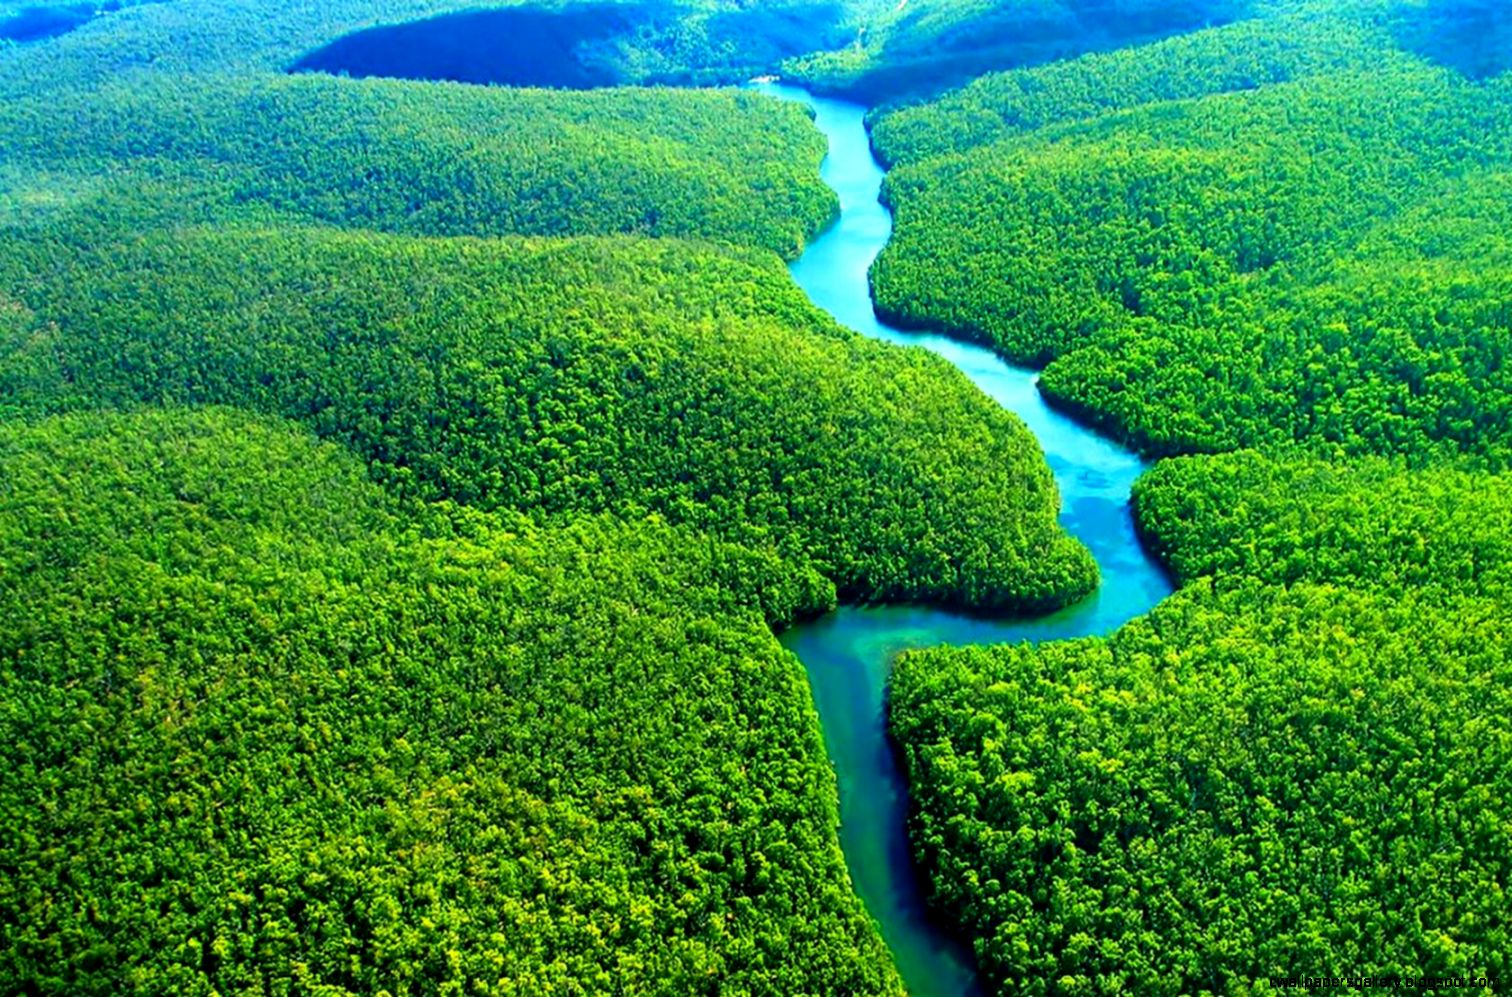 Amazon Rainforest Wallpaper HD Download For Desktop